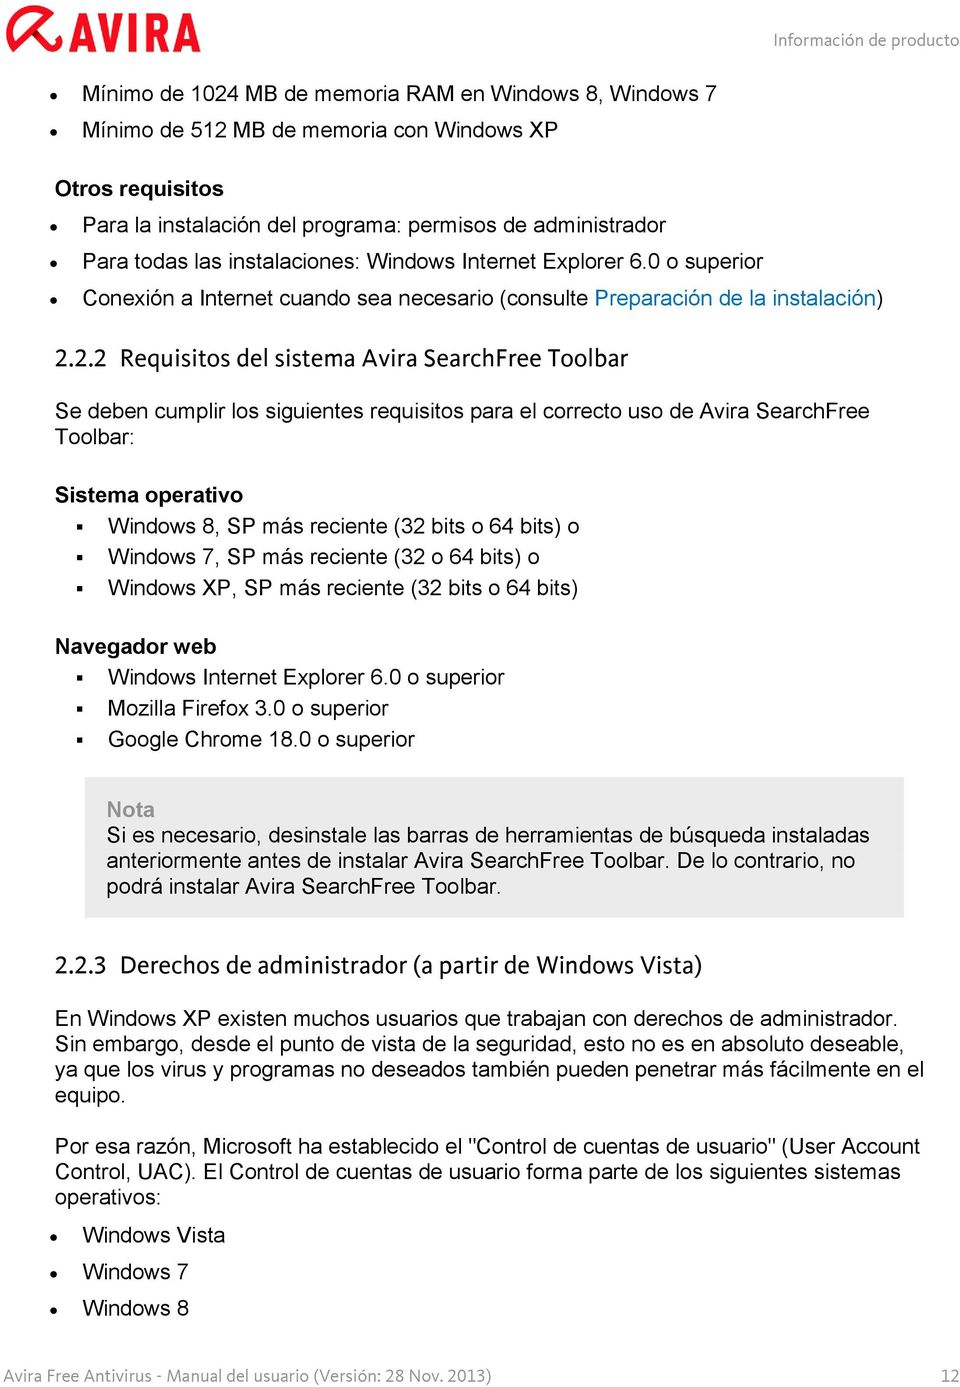 2.2 Requisitos del sistema Avira SearchFree Toolbar Se deben cumplir los siguientes requisitos para el correcto uso de Avira SearchFree Toolbar: Sistema operativo Windows 8, SP más reciente (32 bits